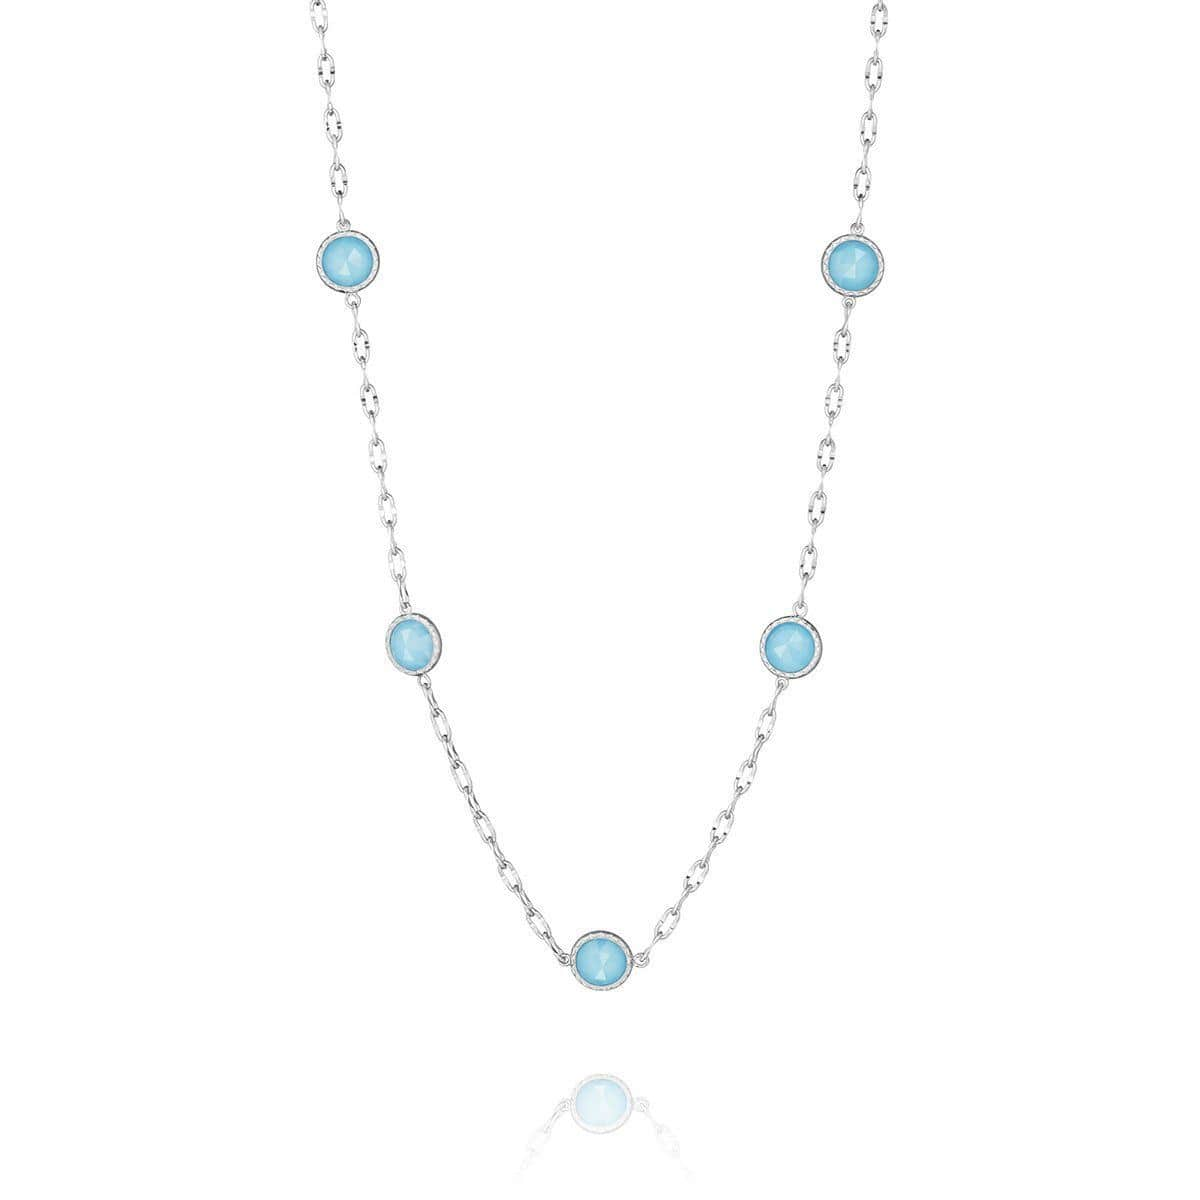 Clear Quartz Neolite Turquoise Necklace - SN14605-Tacori-Renee Taylor Gallery